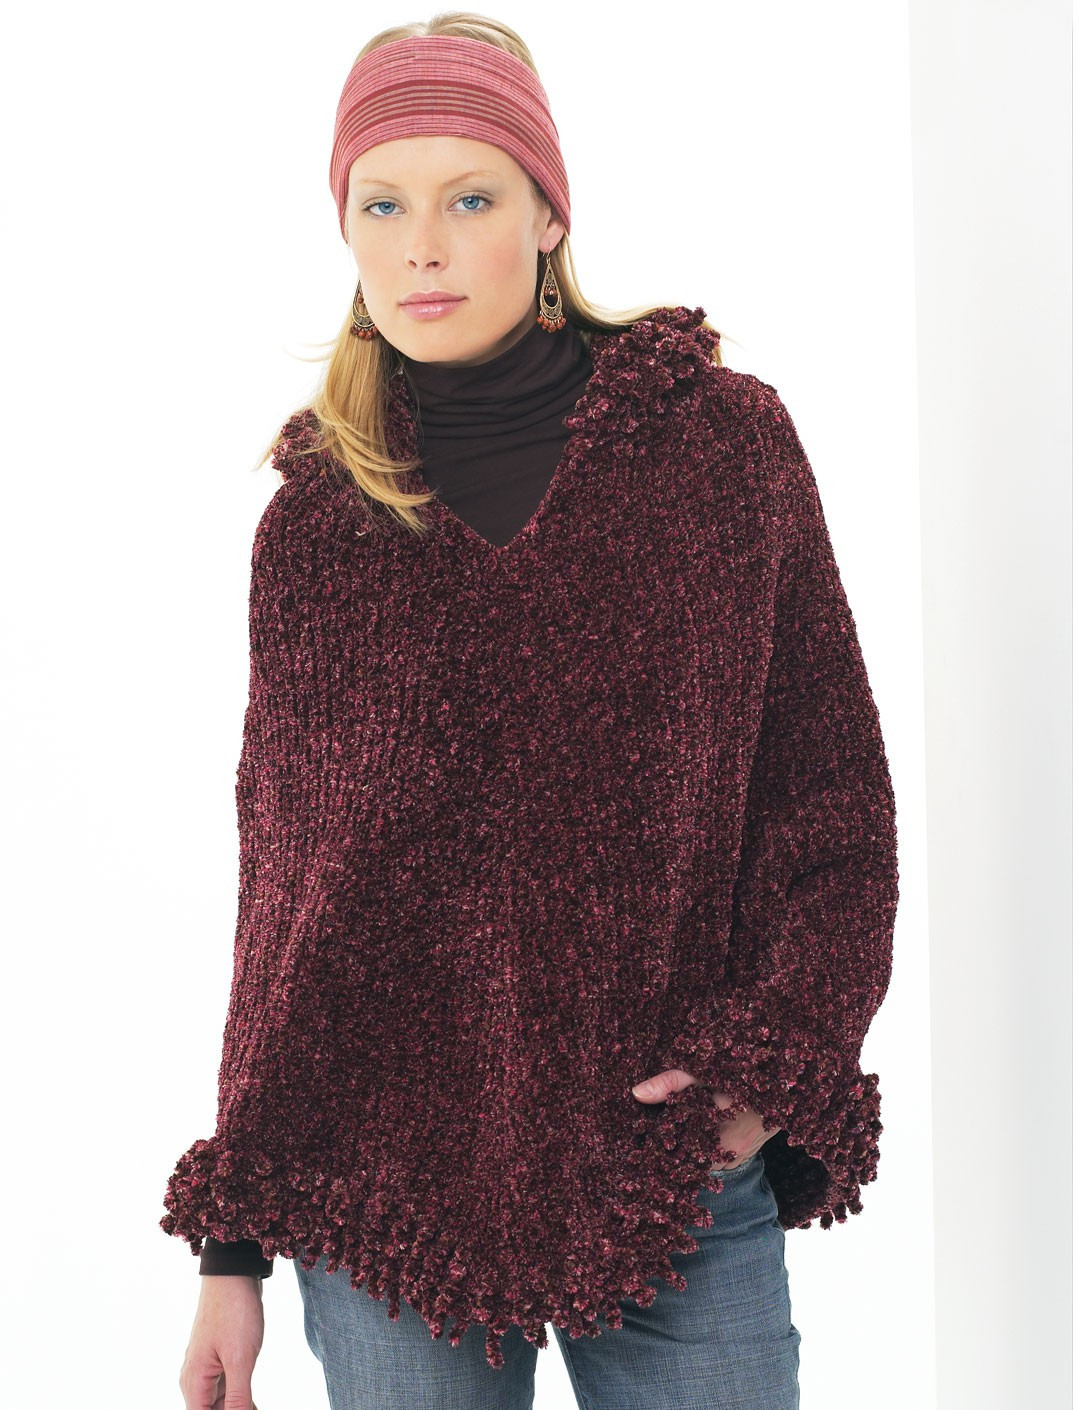 Unique Crochet Poncho with Hood Pattern Free Crochet Cape Pattern Of Wonderful 49 Models Crochet Cape Pattern